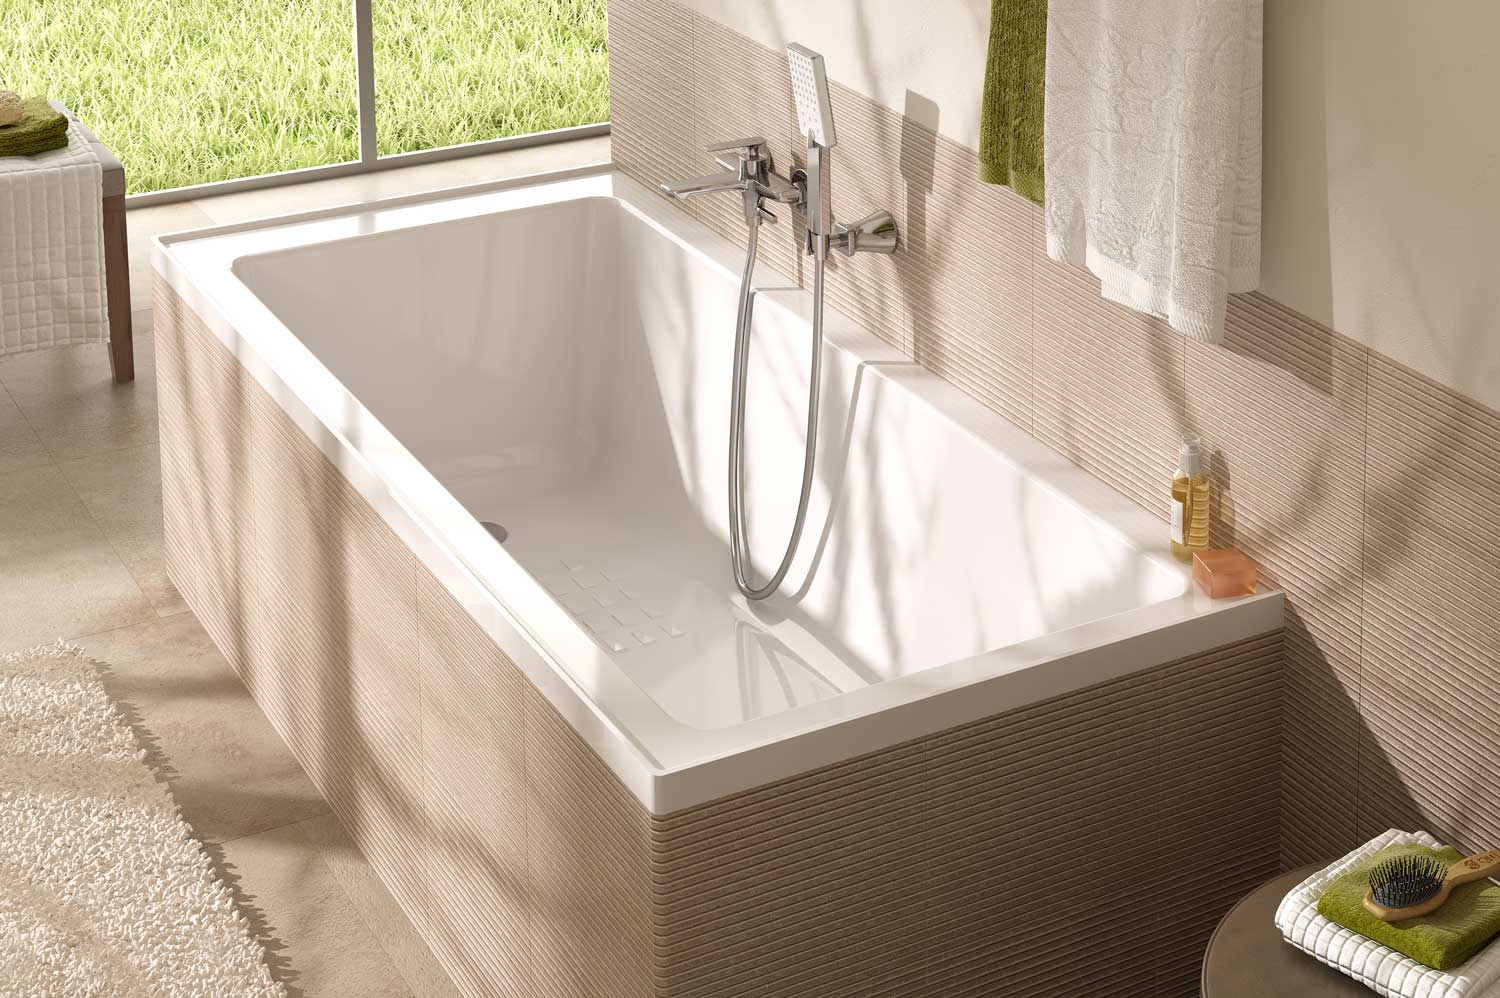 inset bathtub dimensions